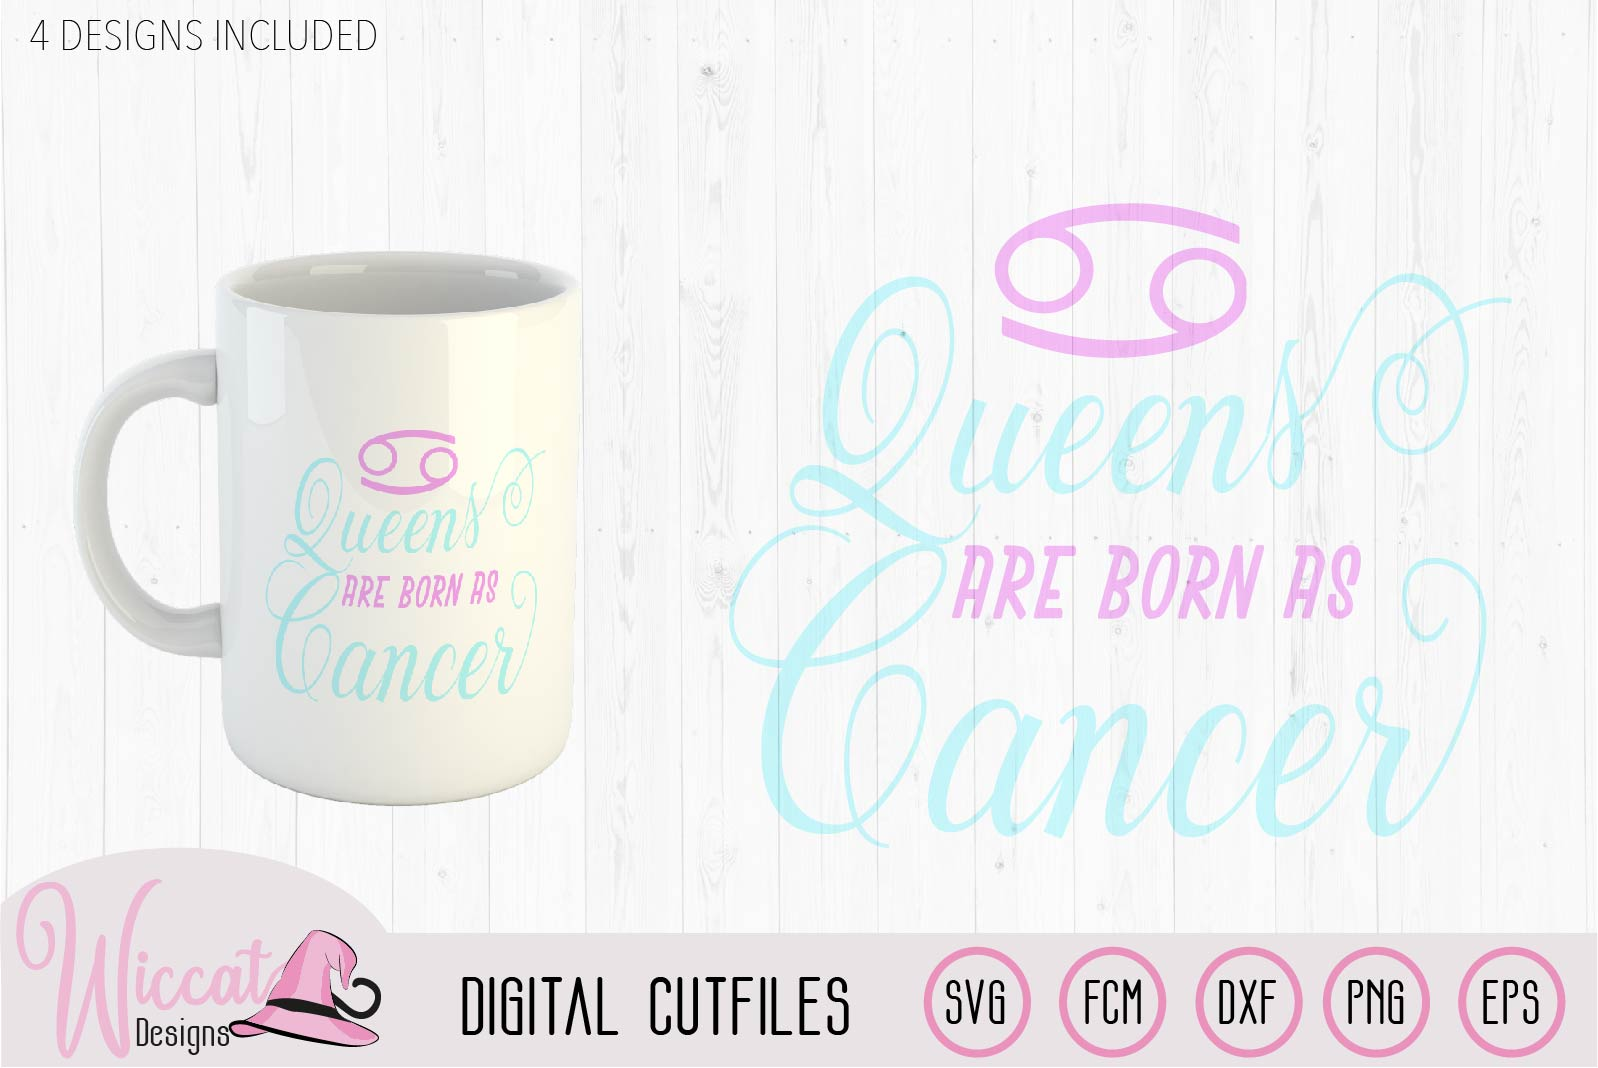 Cancer Zodiac quote svg, Queens are born as svg, word art example image 2